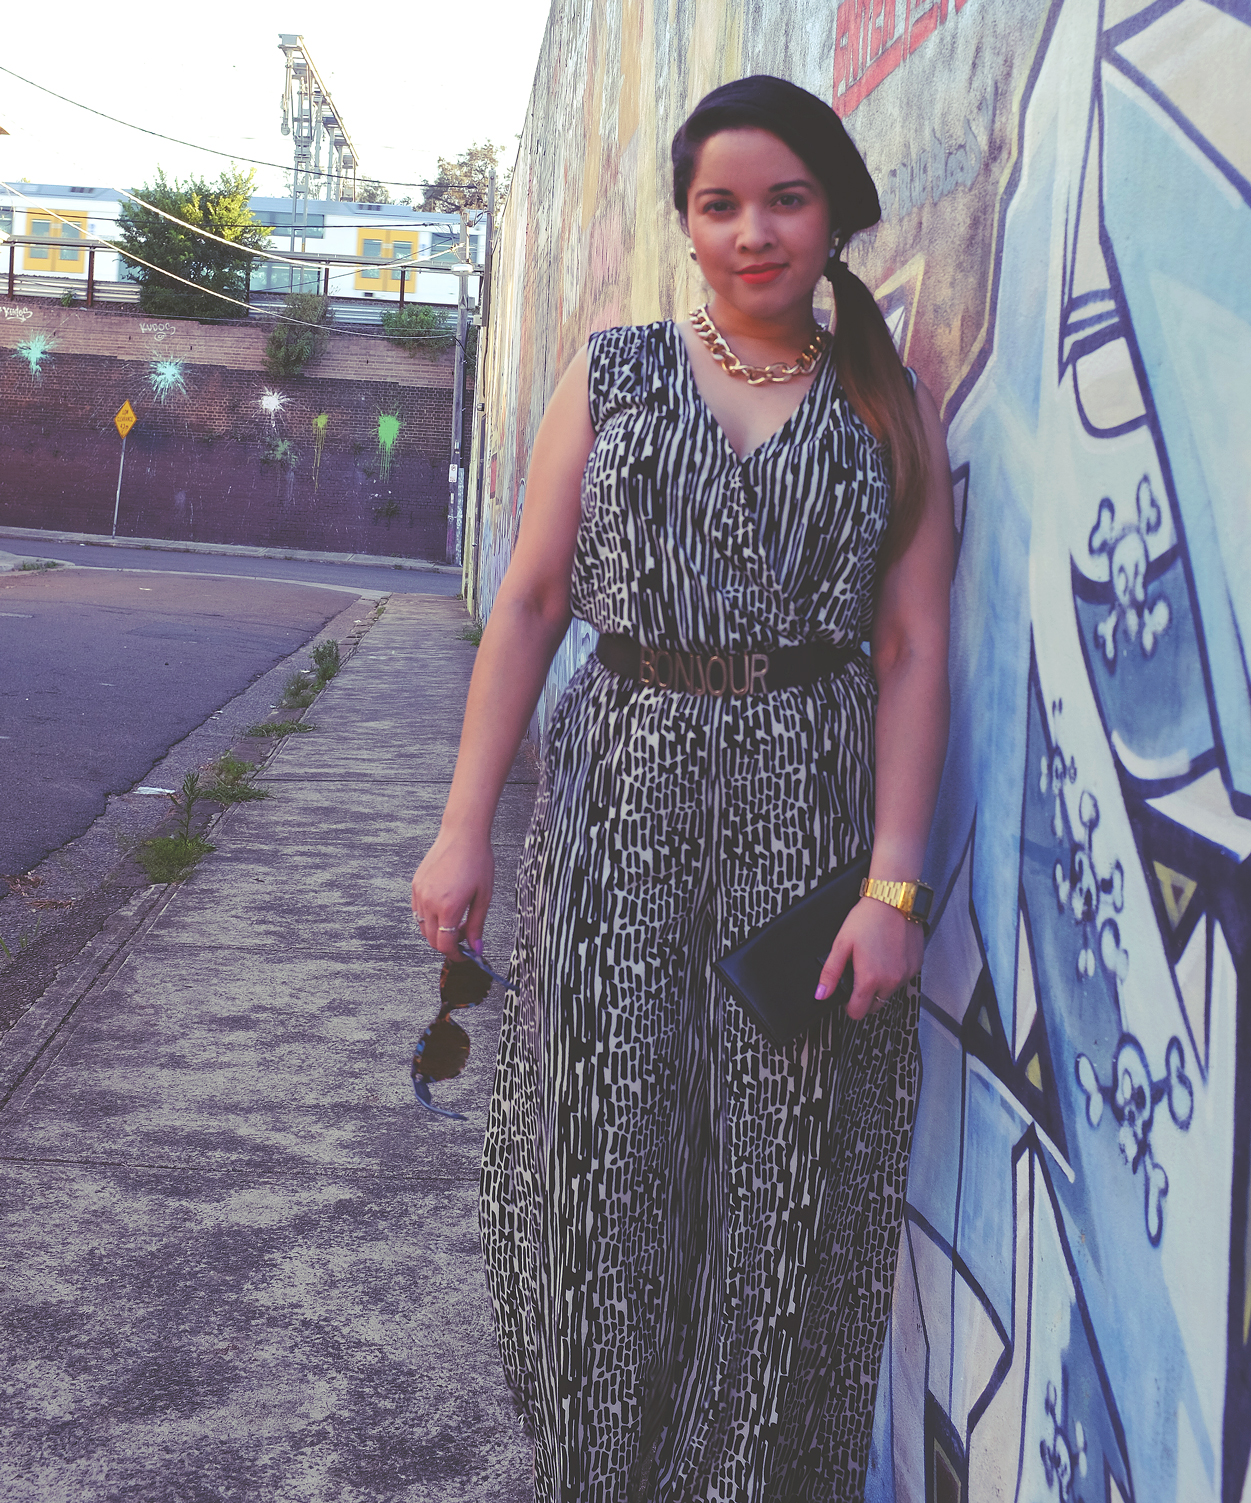 nezuki, fashion, jumpsuit, playsuit, vintage, ysl, clutch, second hand, style, street style, graffiti, art, street styling, street art, sydney, sydney blogger, sunglasses, Chinese new year, kung fu, movie, movie poster, cinephile, aerosol art, sydney fashion blogger, casio watch, hair, makeup inspo, lipstick